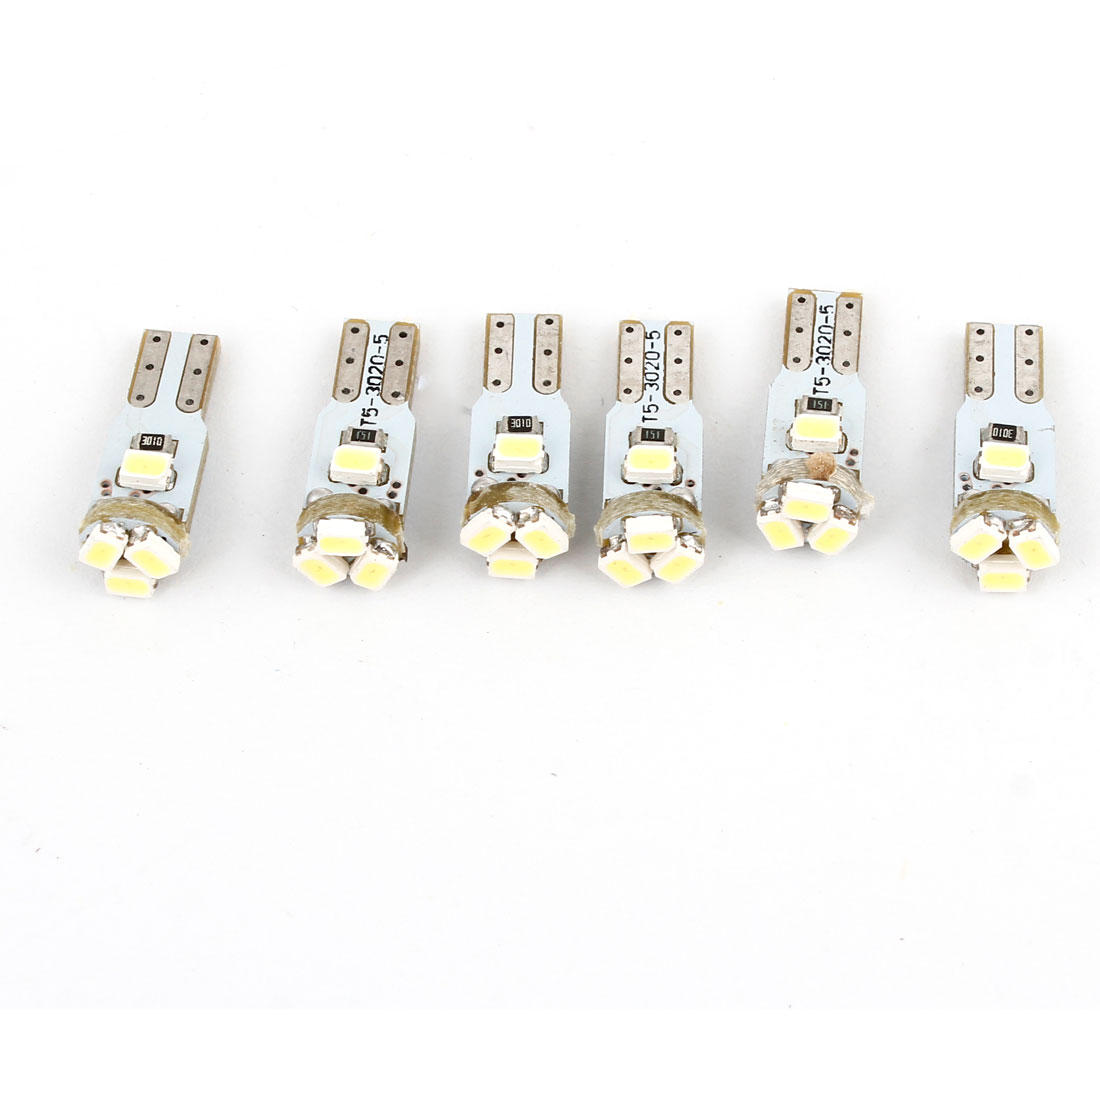 6PCS T5 3020 White 5 LED Dashboard Lamps Side Lights Bulbs for Auto Car Internal